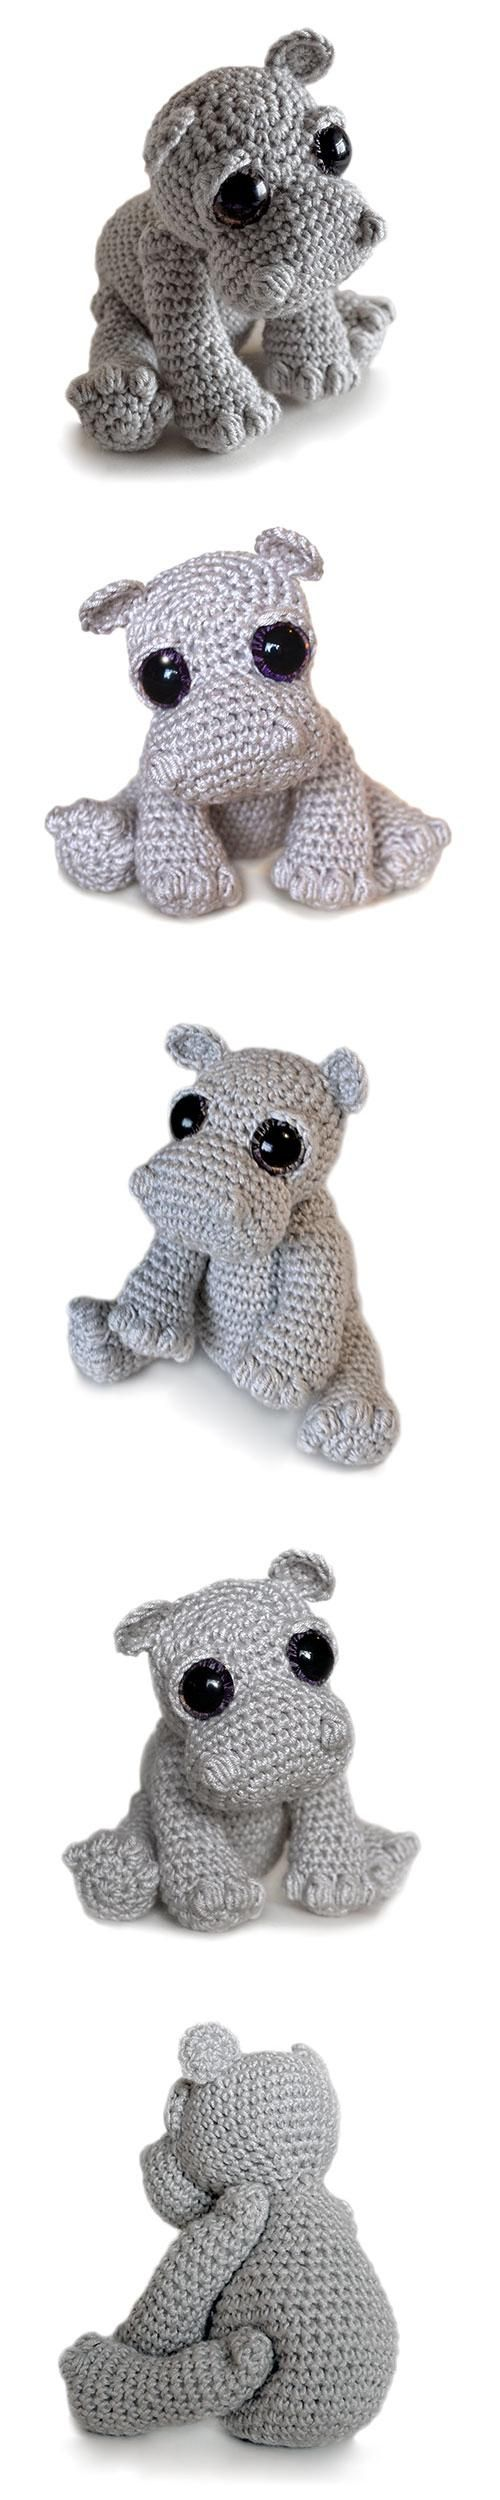 Rosie the Hippo amigurumi pattern by Patchwork Moose (Kate E Hancock ...